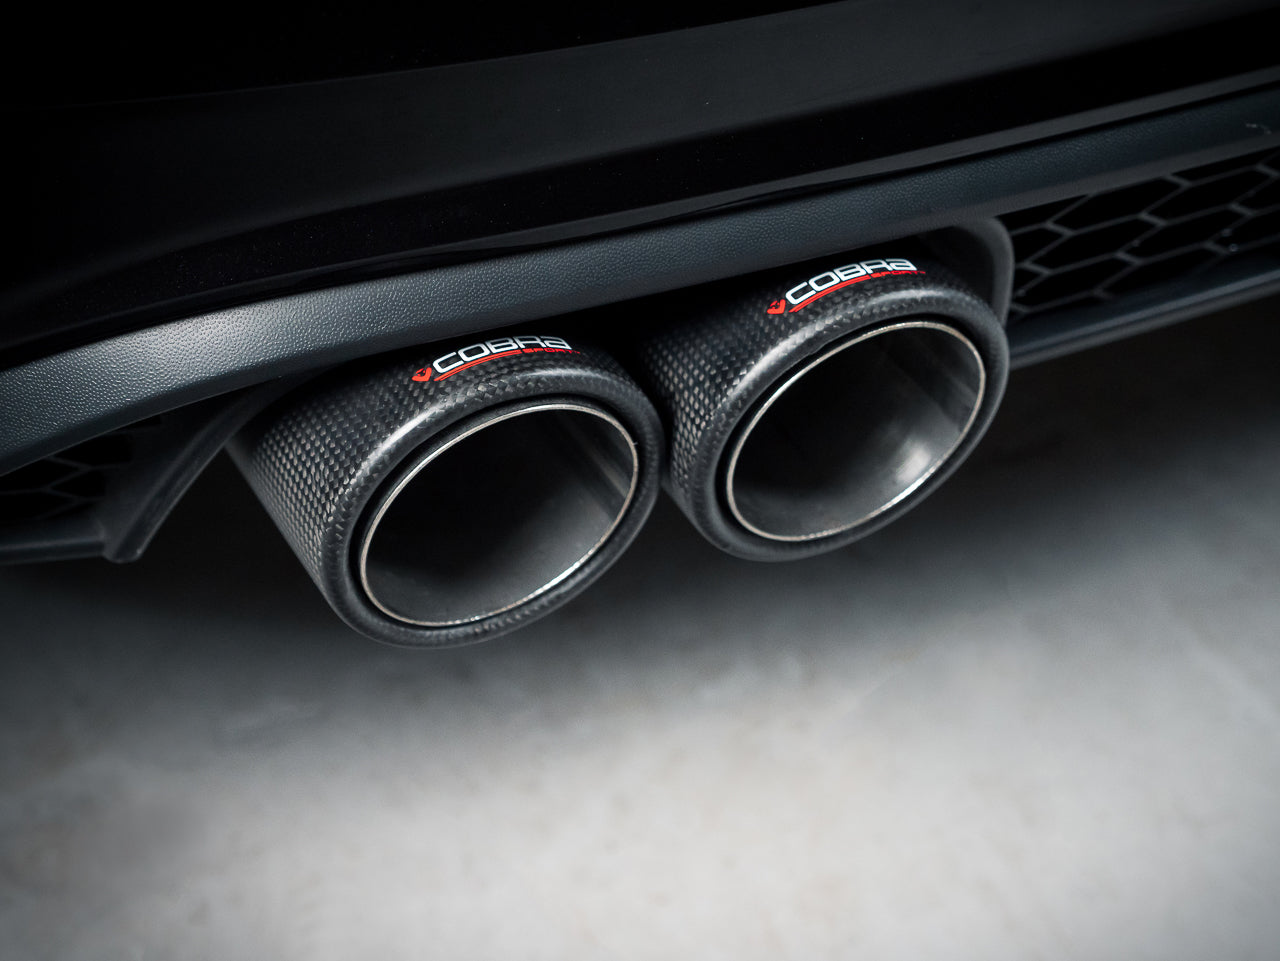 VW Polo GTI Cobra Exhaust Carbon Fibre Tailpipes